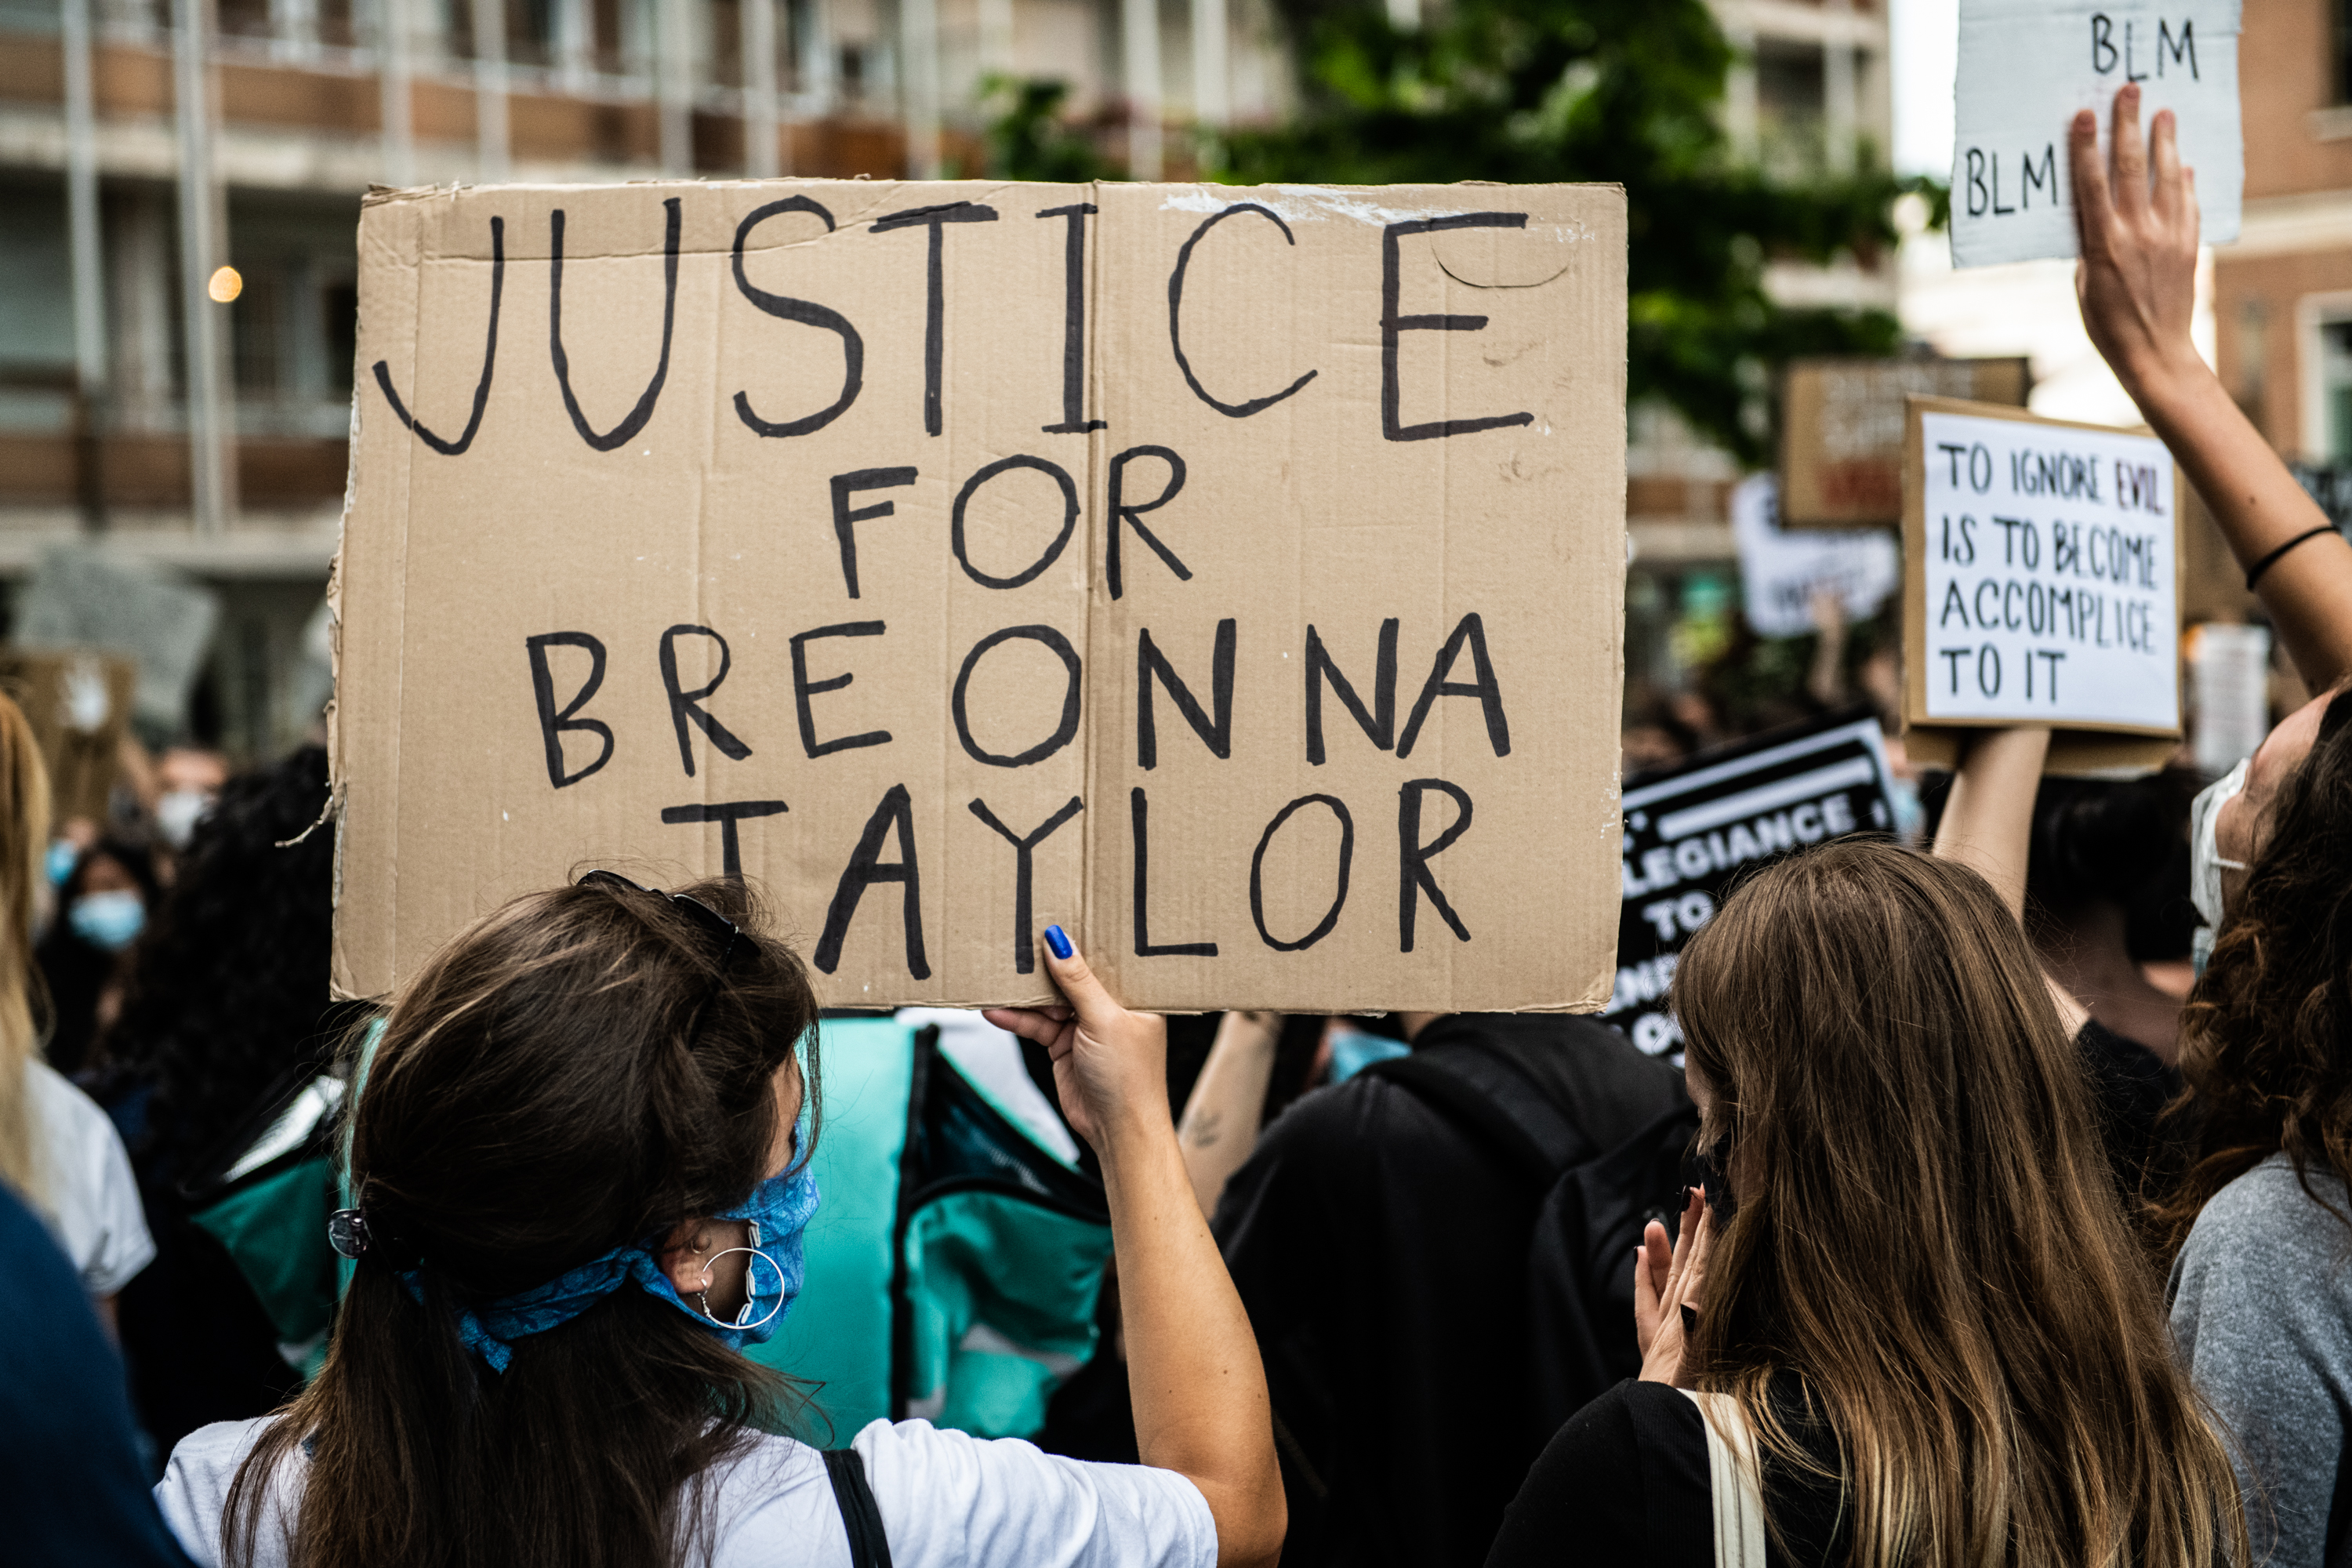 A girl holds a sign asking justice for Breonna Taylor while demonstrating in Venice, Italy on June 6, 2020.